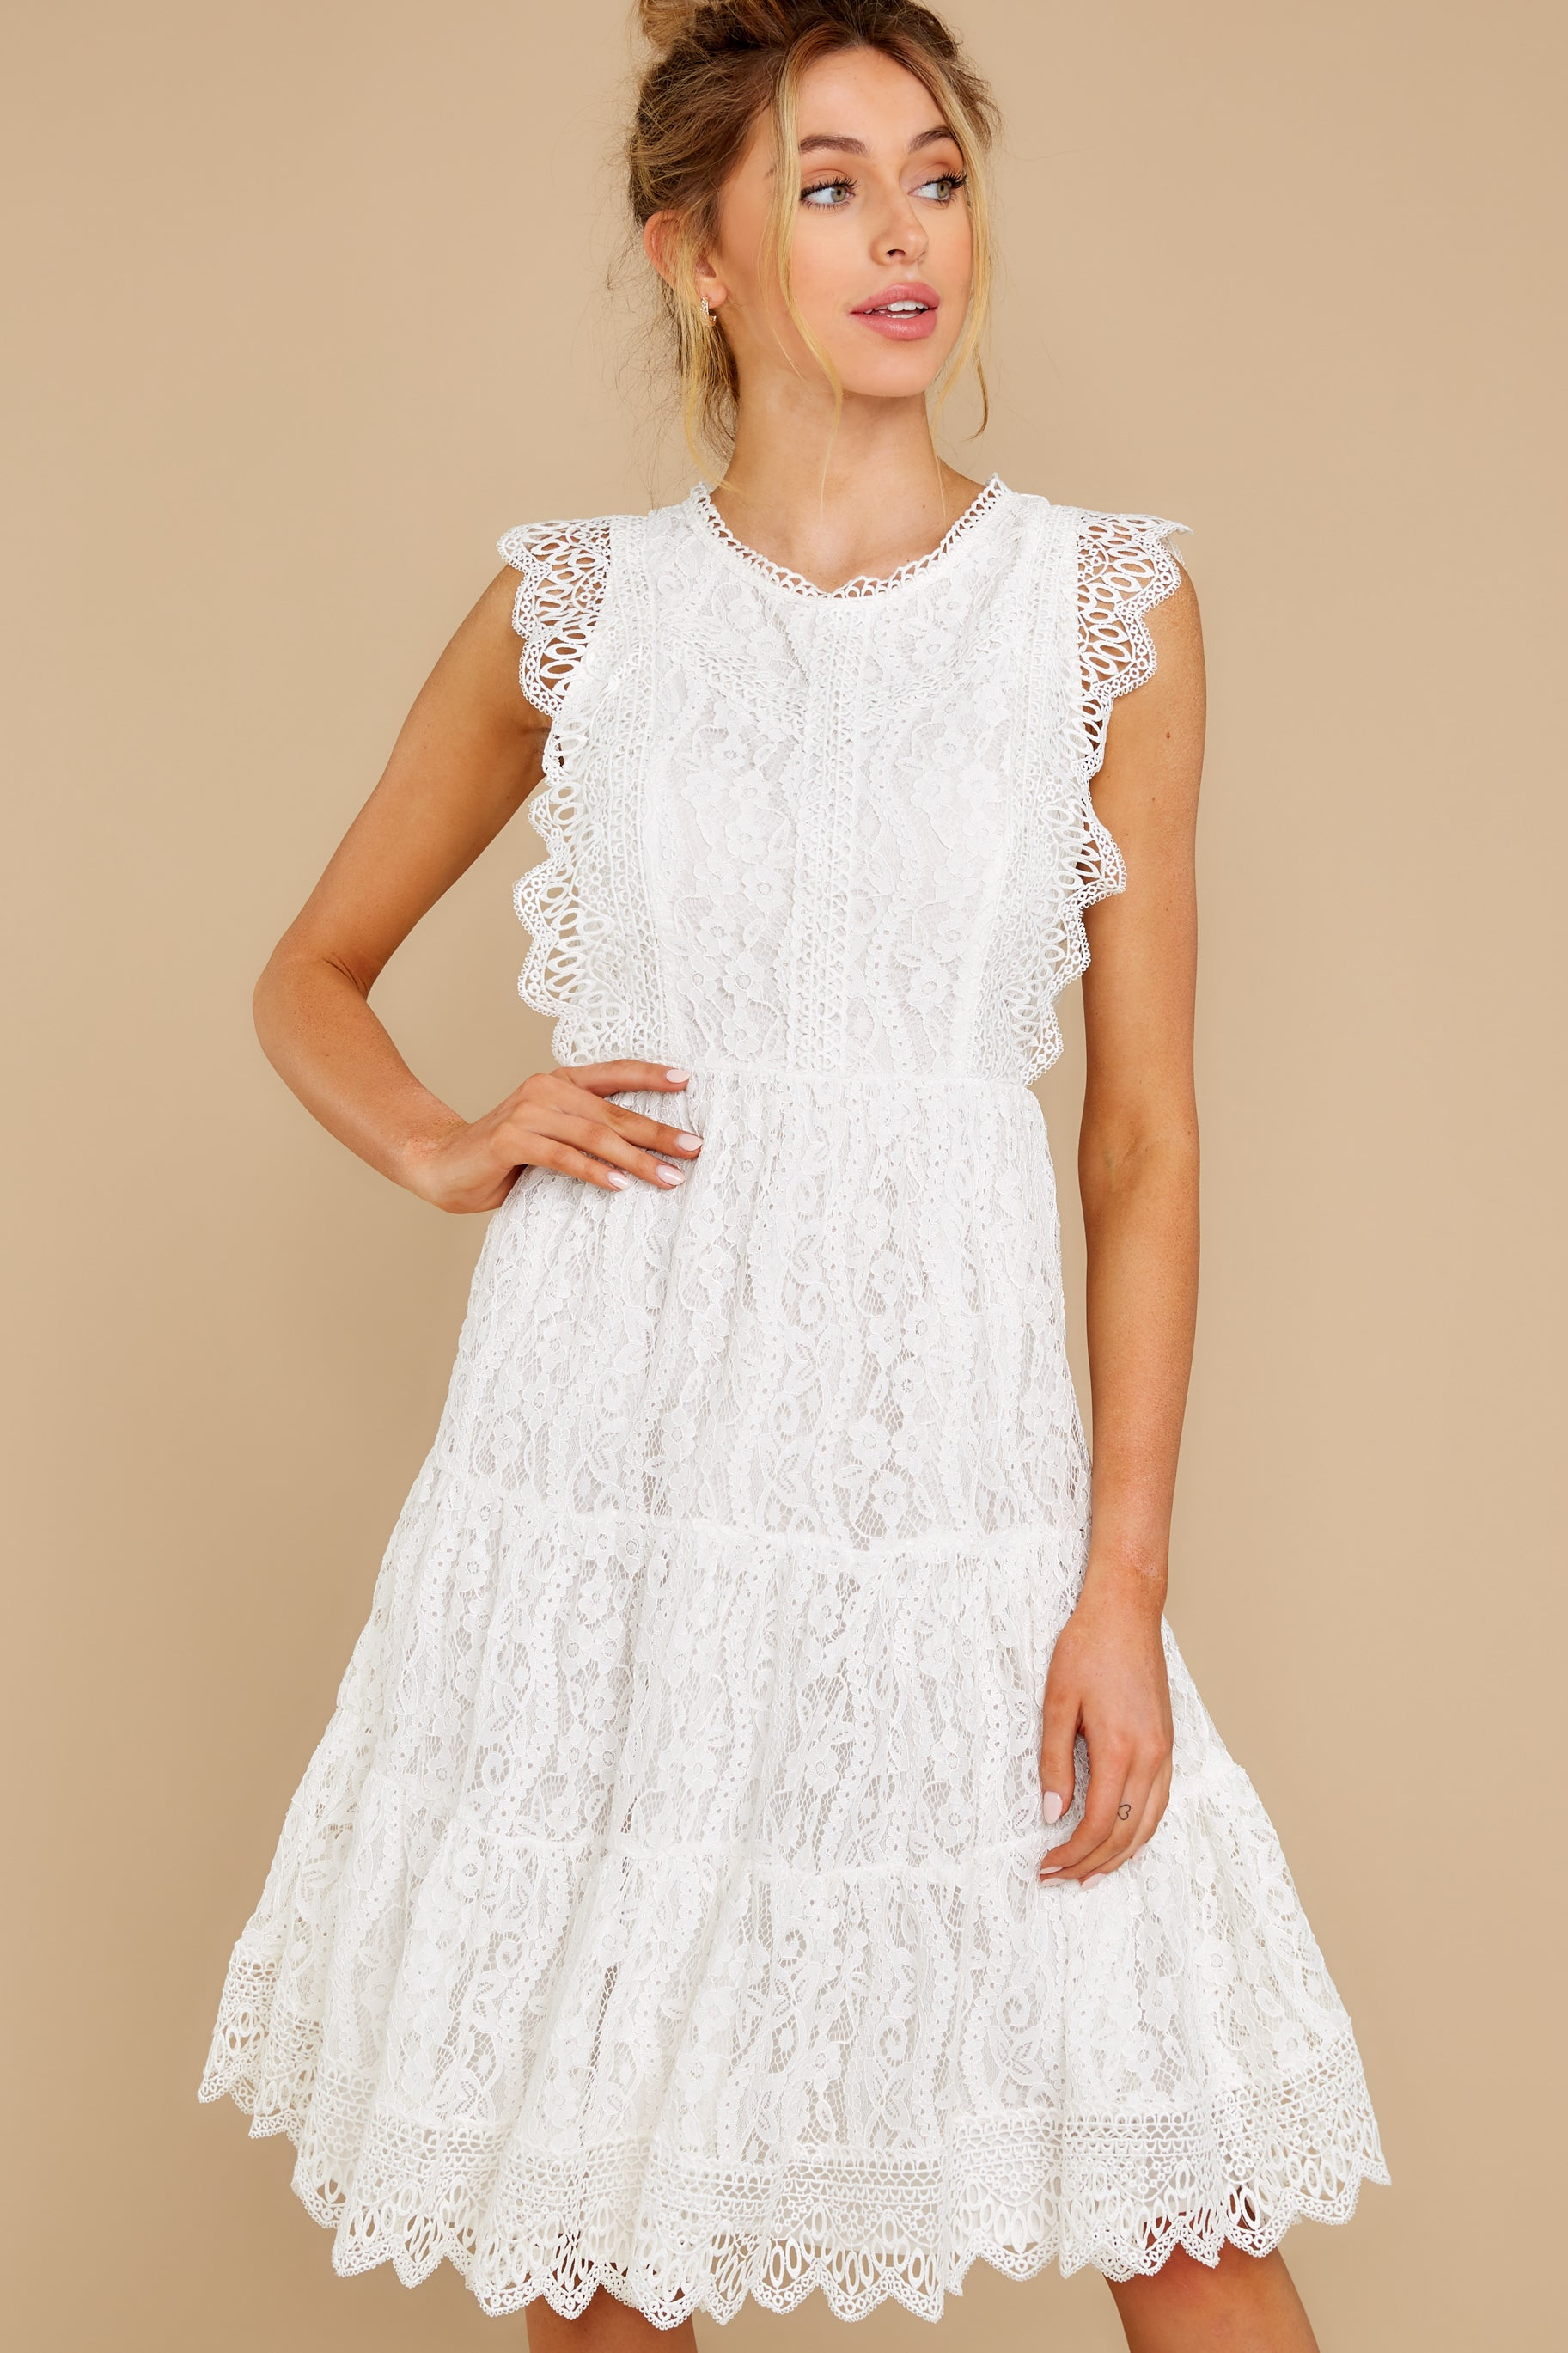 5 Simply Amazing White Lace Dress at reddress.com